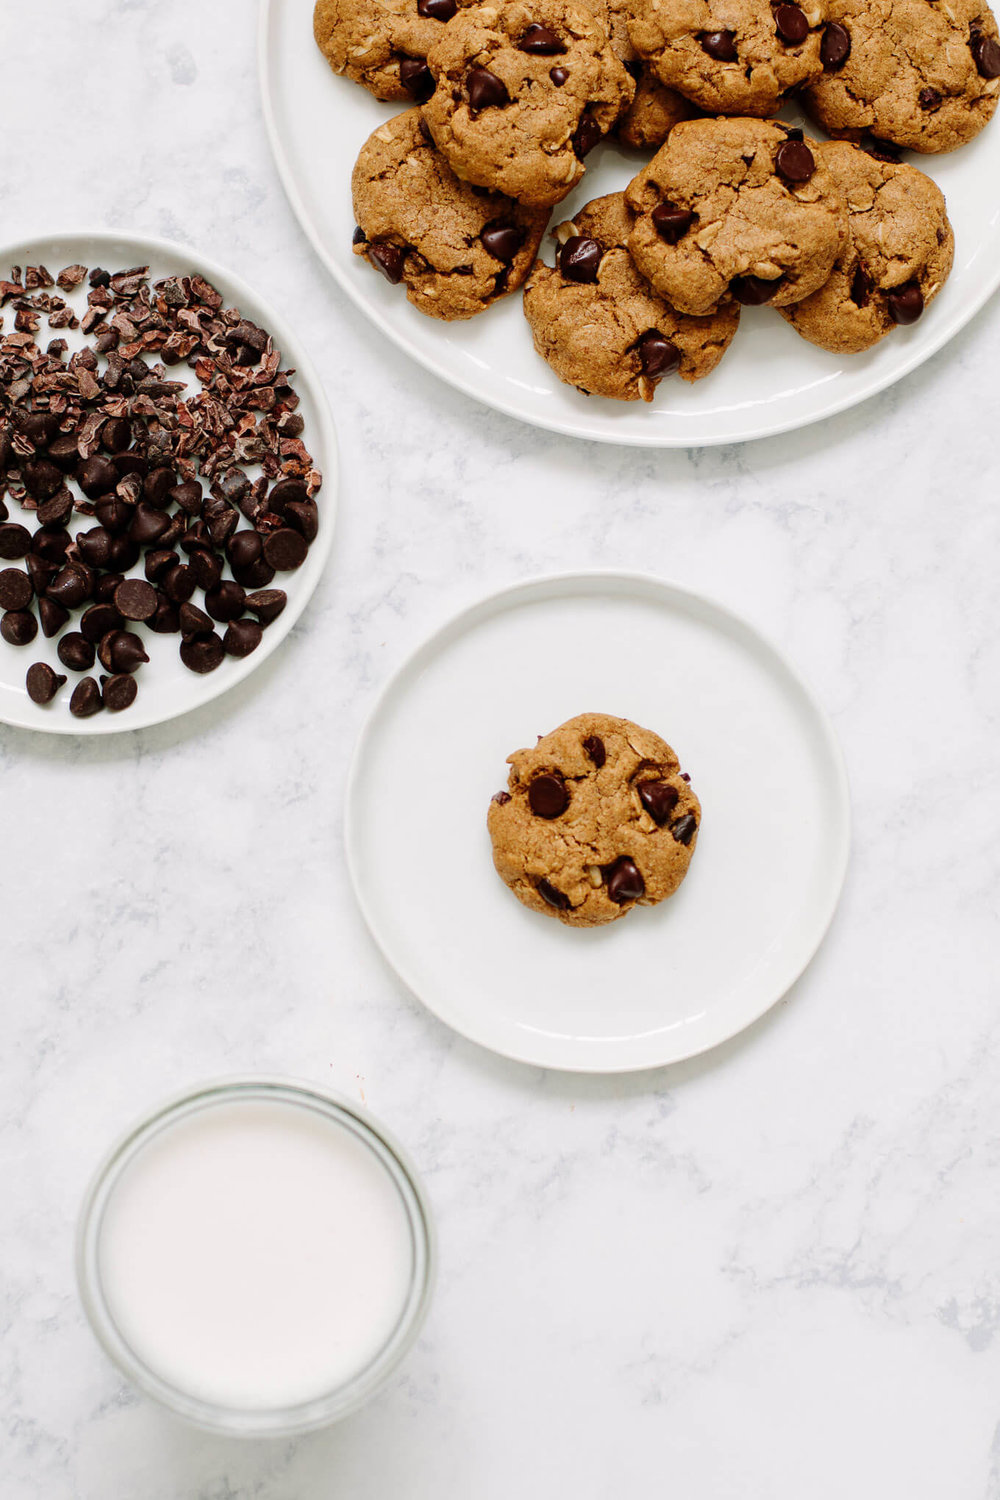 Chocolate-Chip-Cocao-Nib-Cookies-2-of-10.jpg